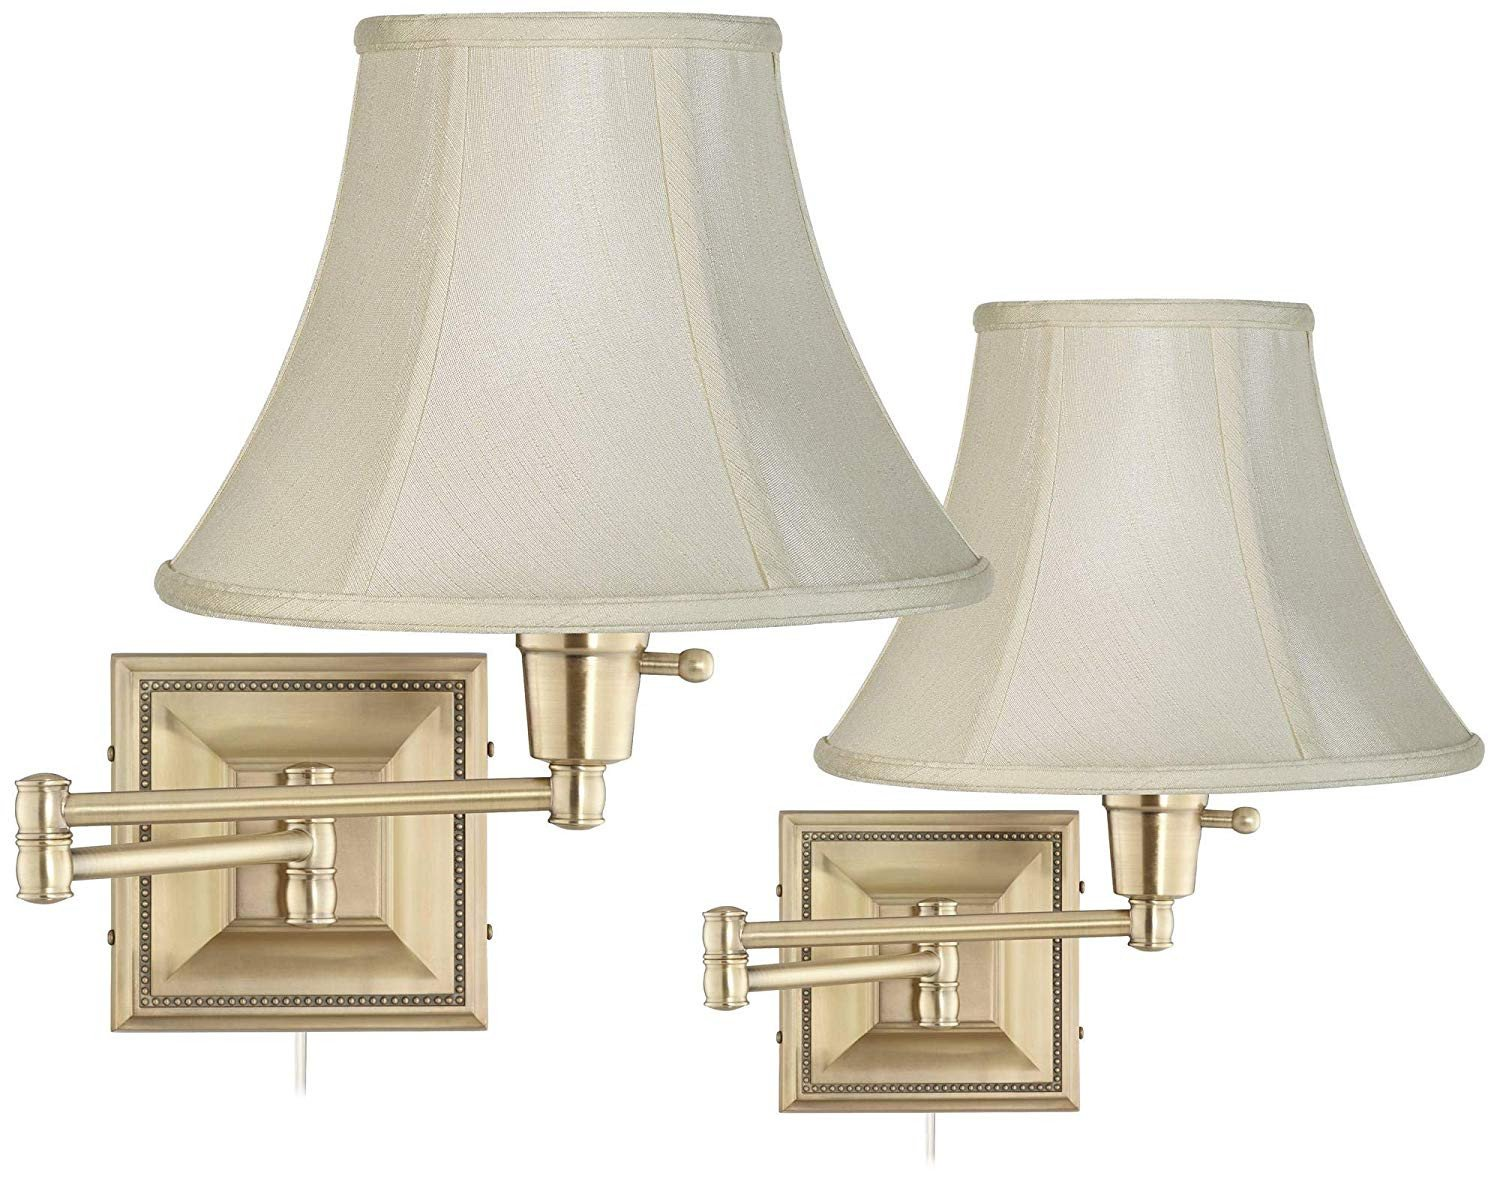 Plug In Wall Lamps for Bedroom Luxury Set Of 2 Brass Finish Creme Shade Swing Arm Wall Lamps